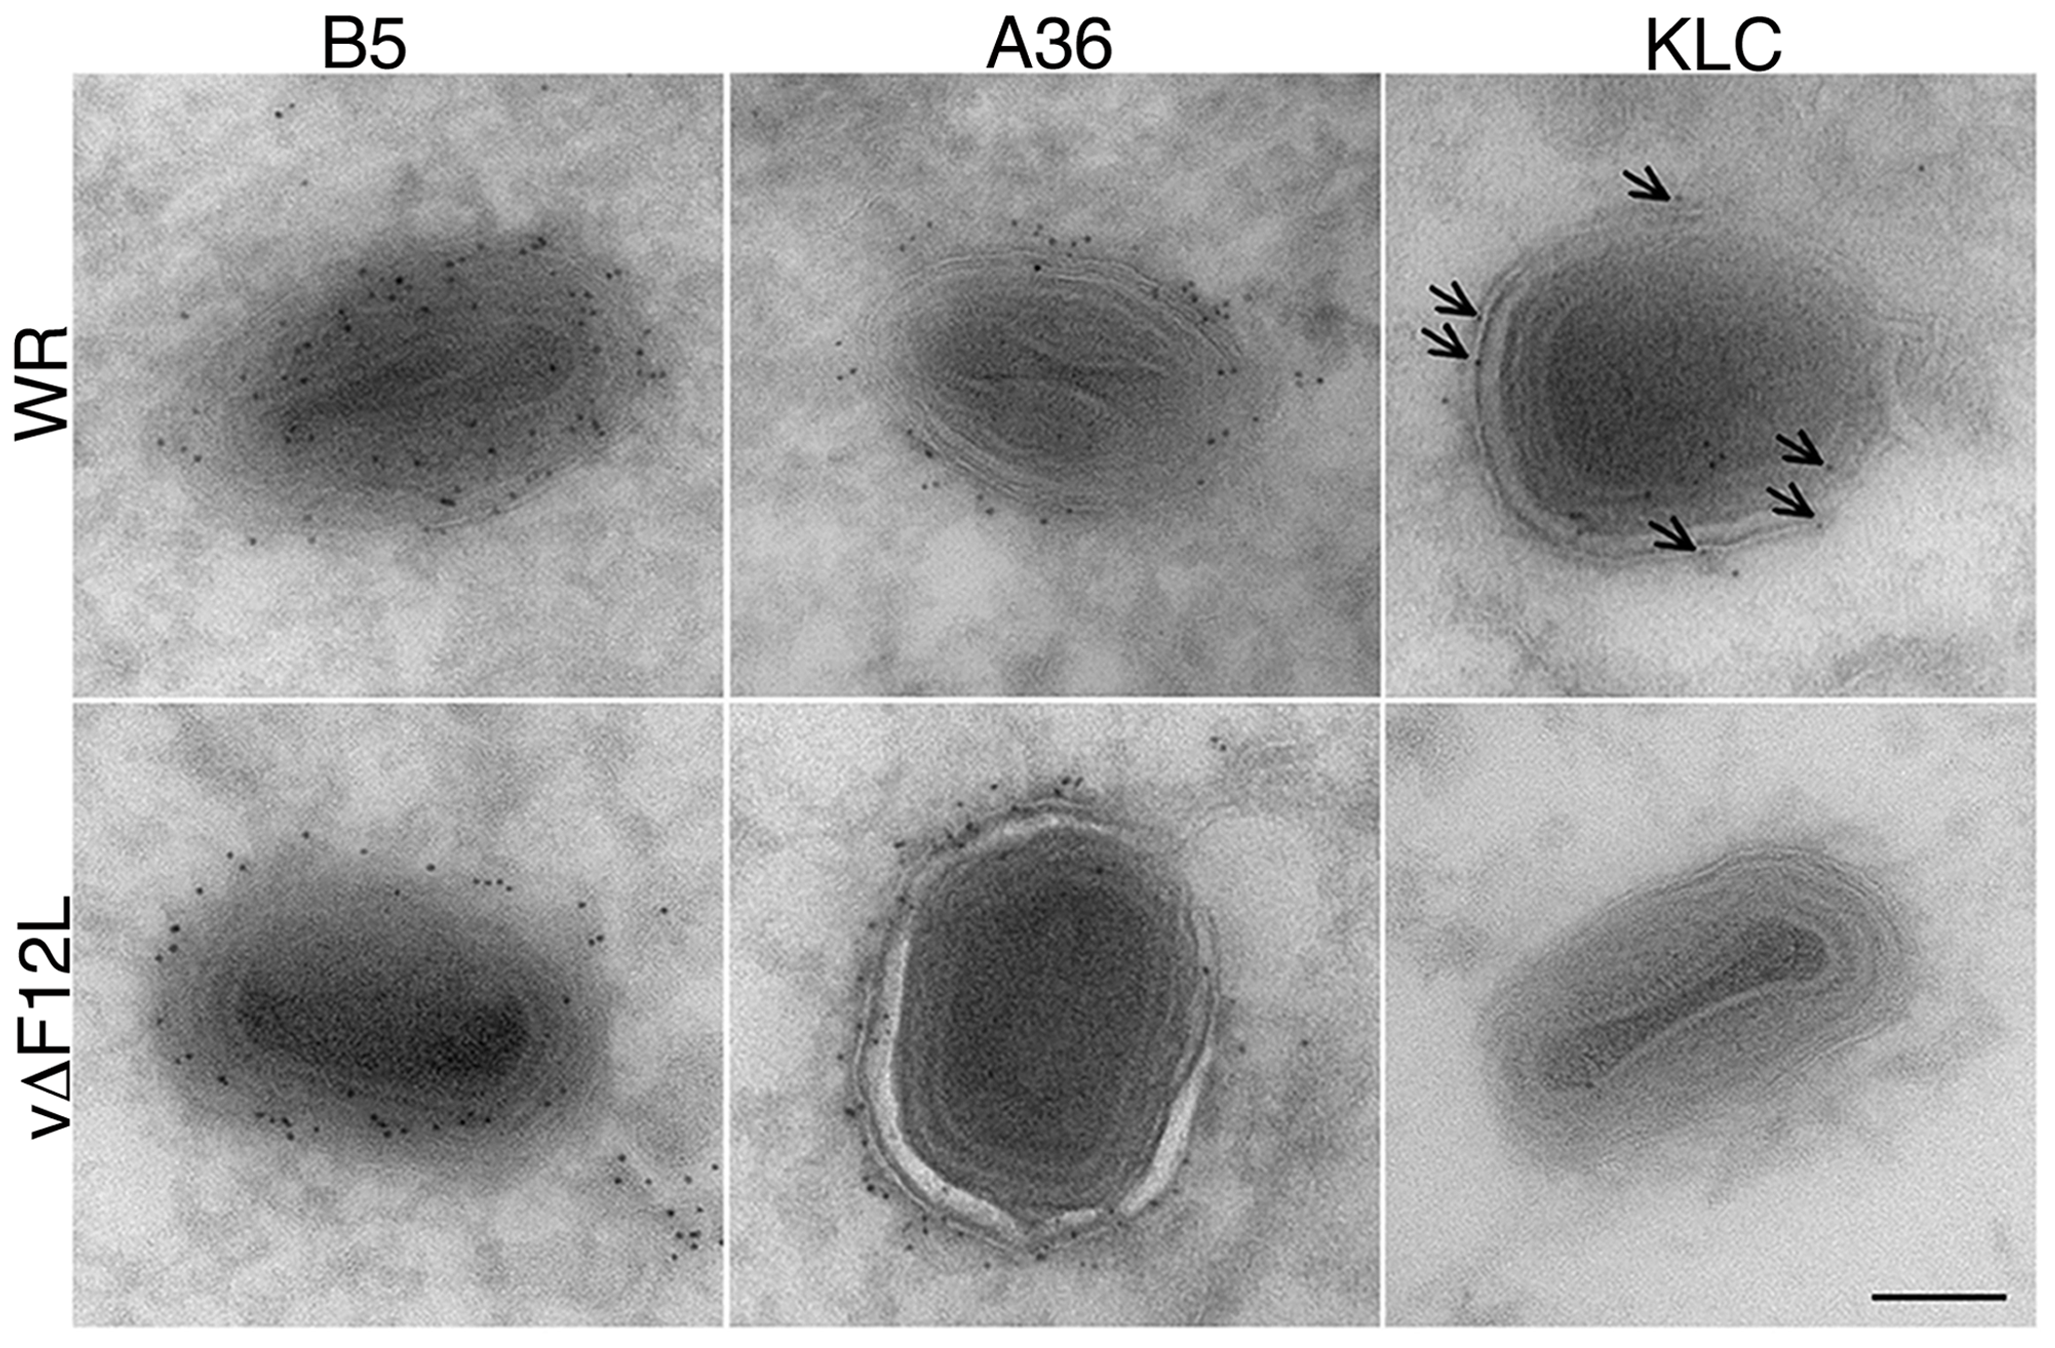 Cryoimmunoelectron microscopy showing F12 is needed for KLC, but not A36, recruitment to IEV.